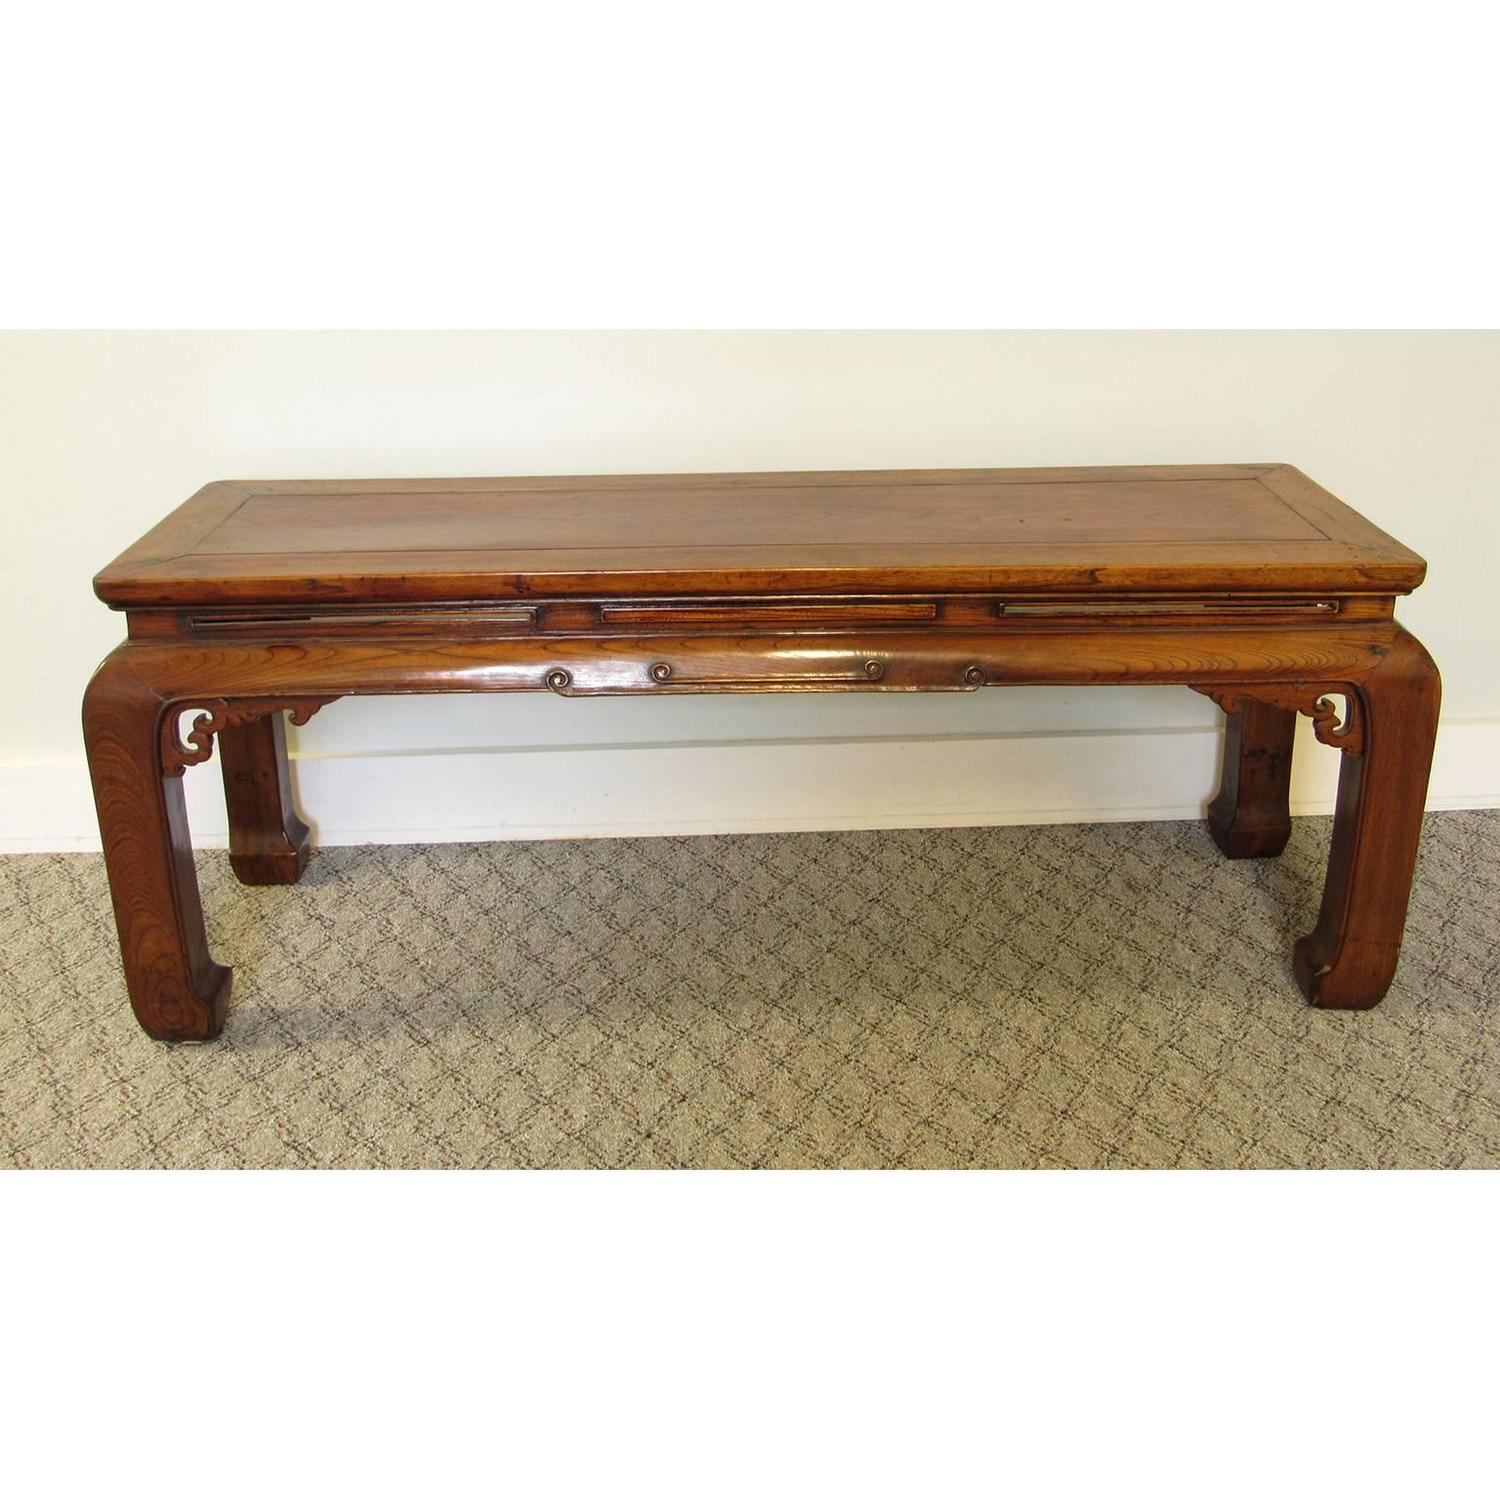 antique chinese ming style carved hardwood table 19th 11772 | fn4102 5 z